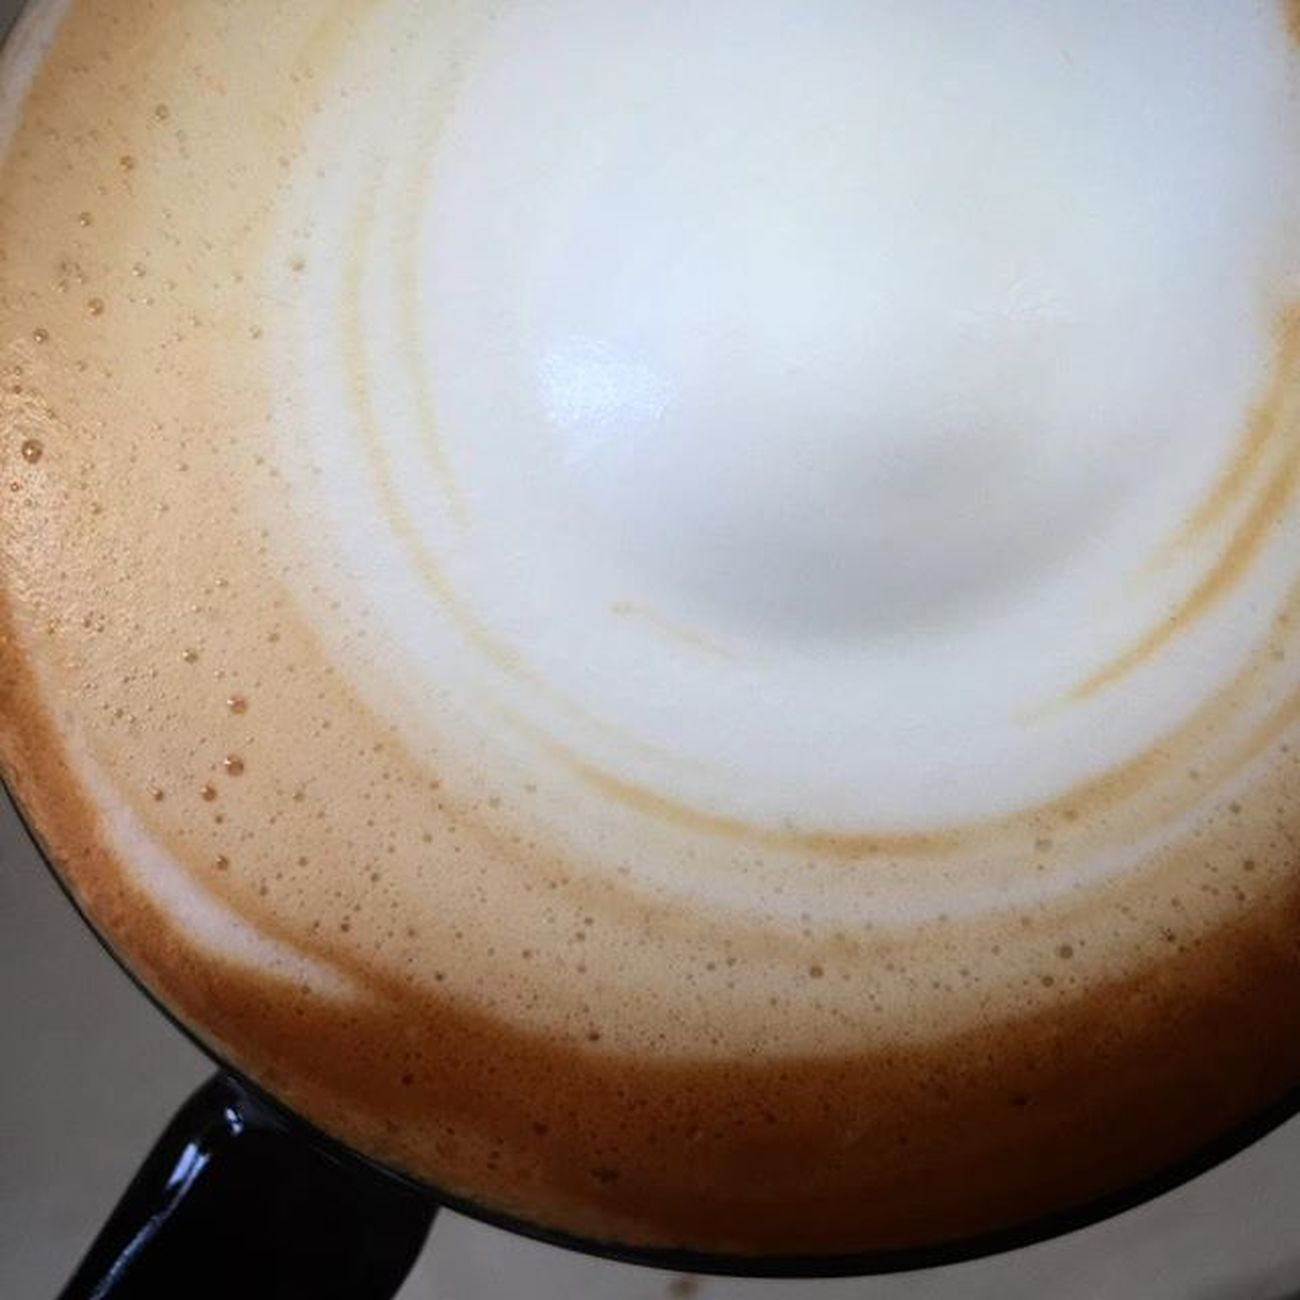 The big fat foam. Wholelattelove Coffeegeek Cuppuccino Bluebottlecoffee